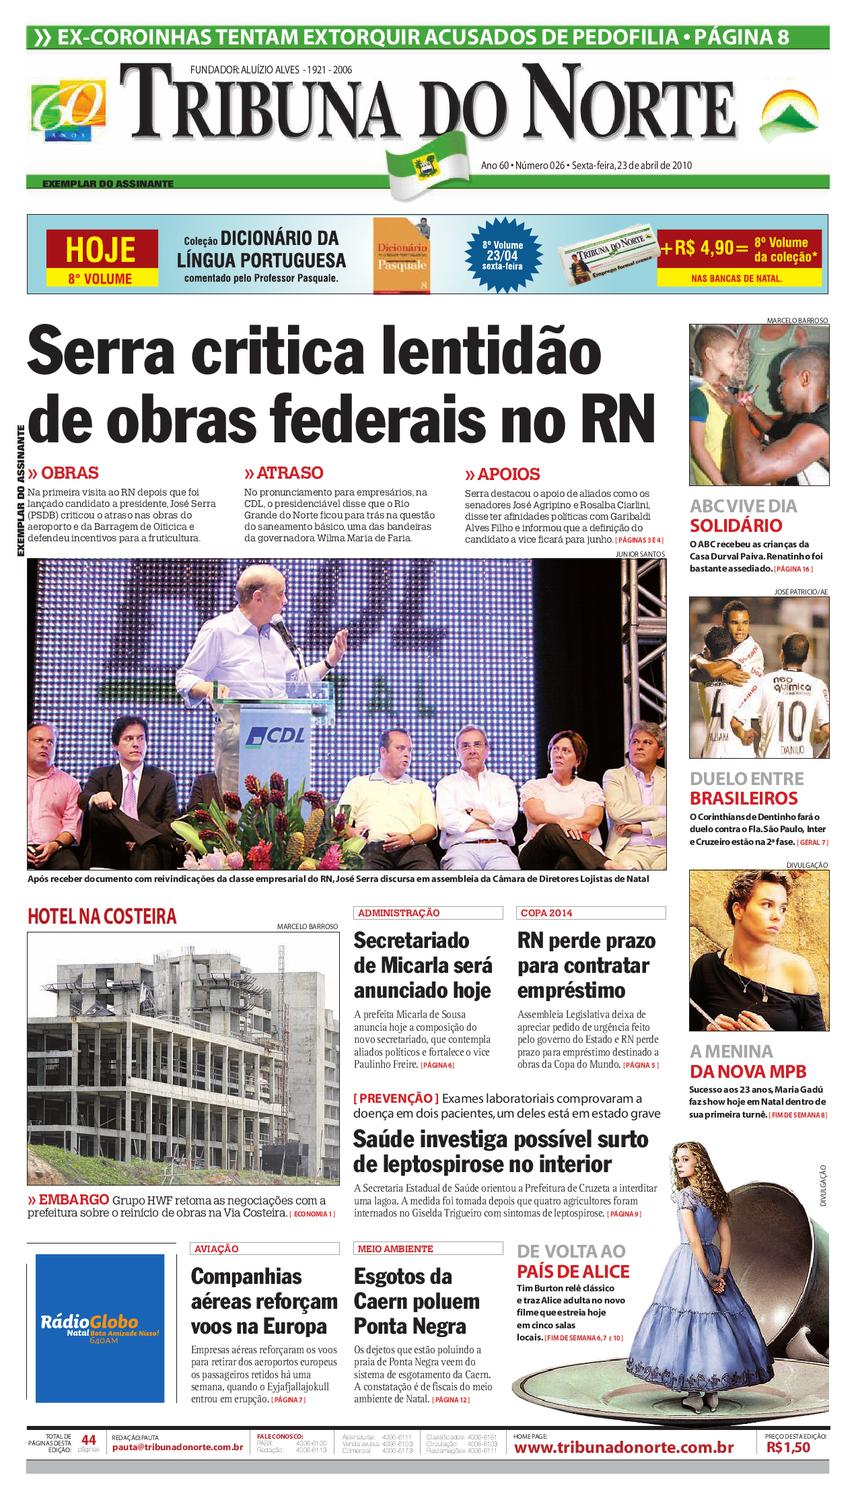 Tribuna do Norte - 23 04 2010 by Empresa Jornalística Tribuna do Norte Ltda  - issuu 7629bfaa45